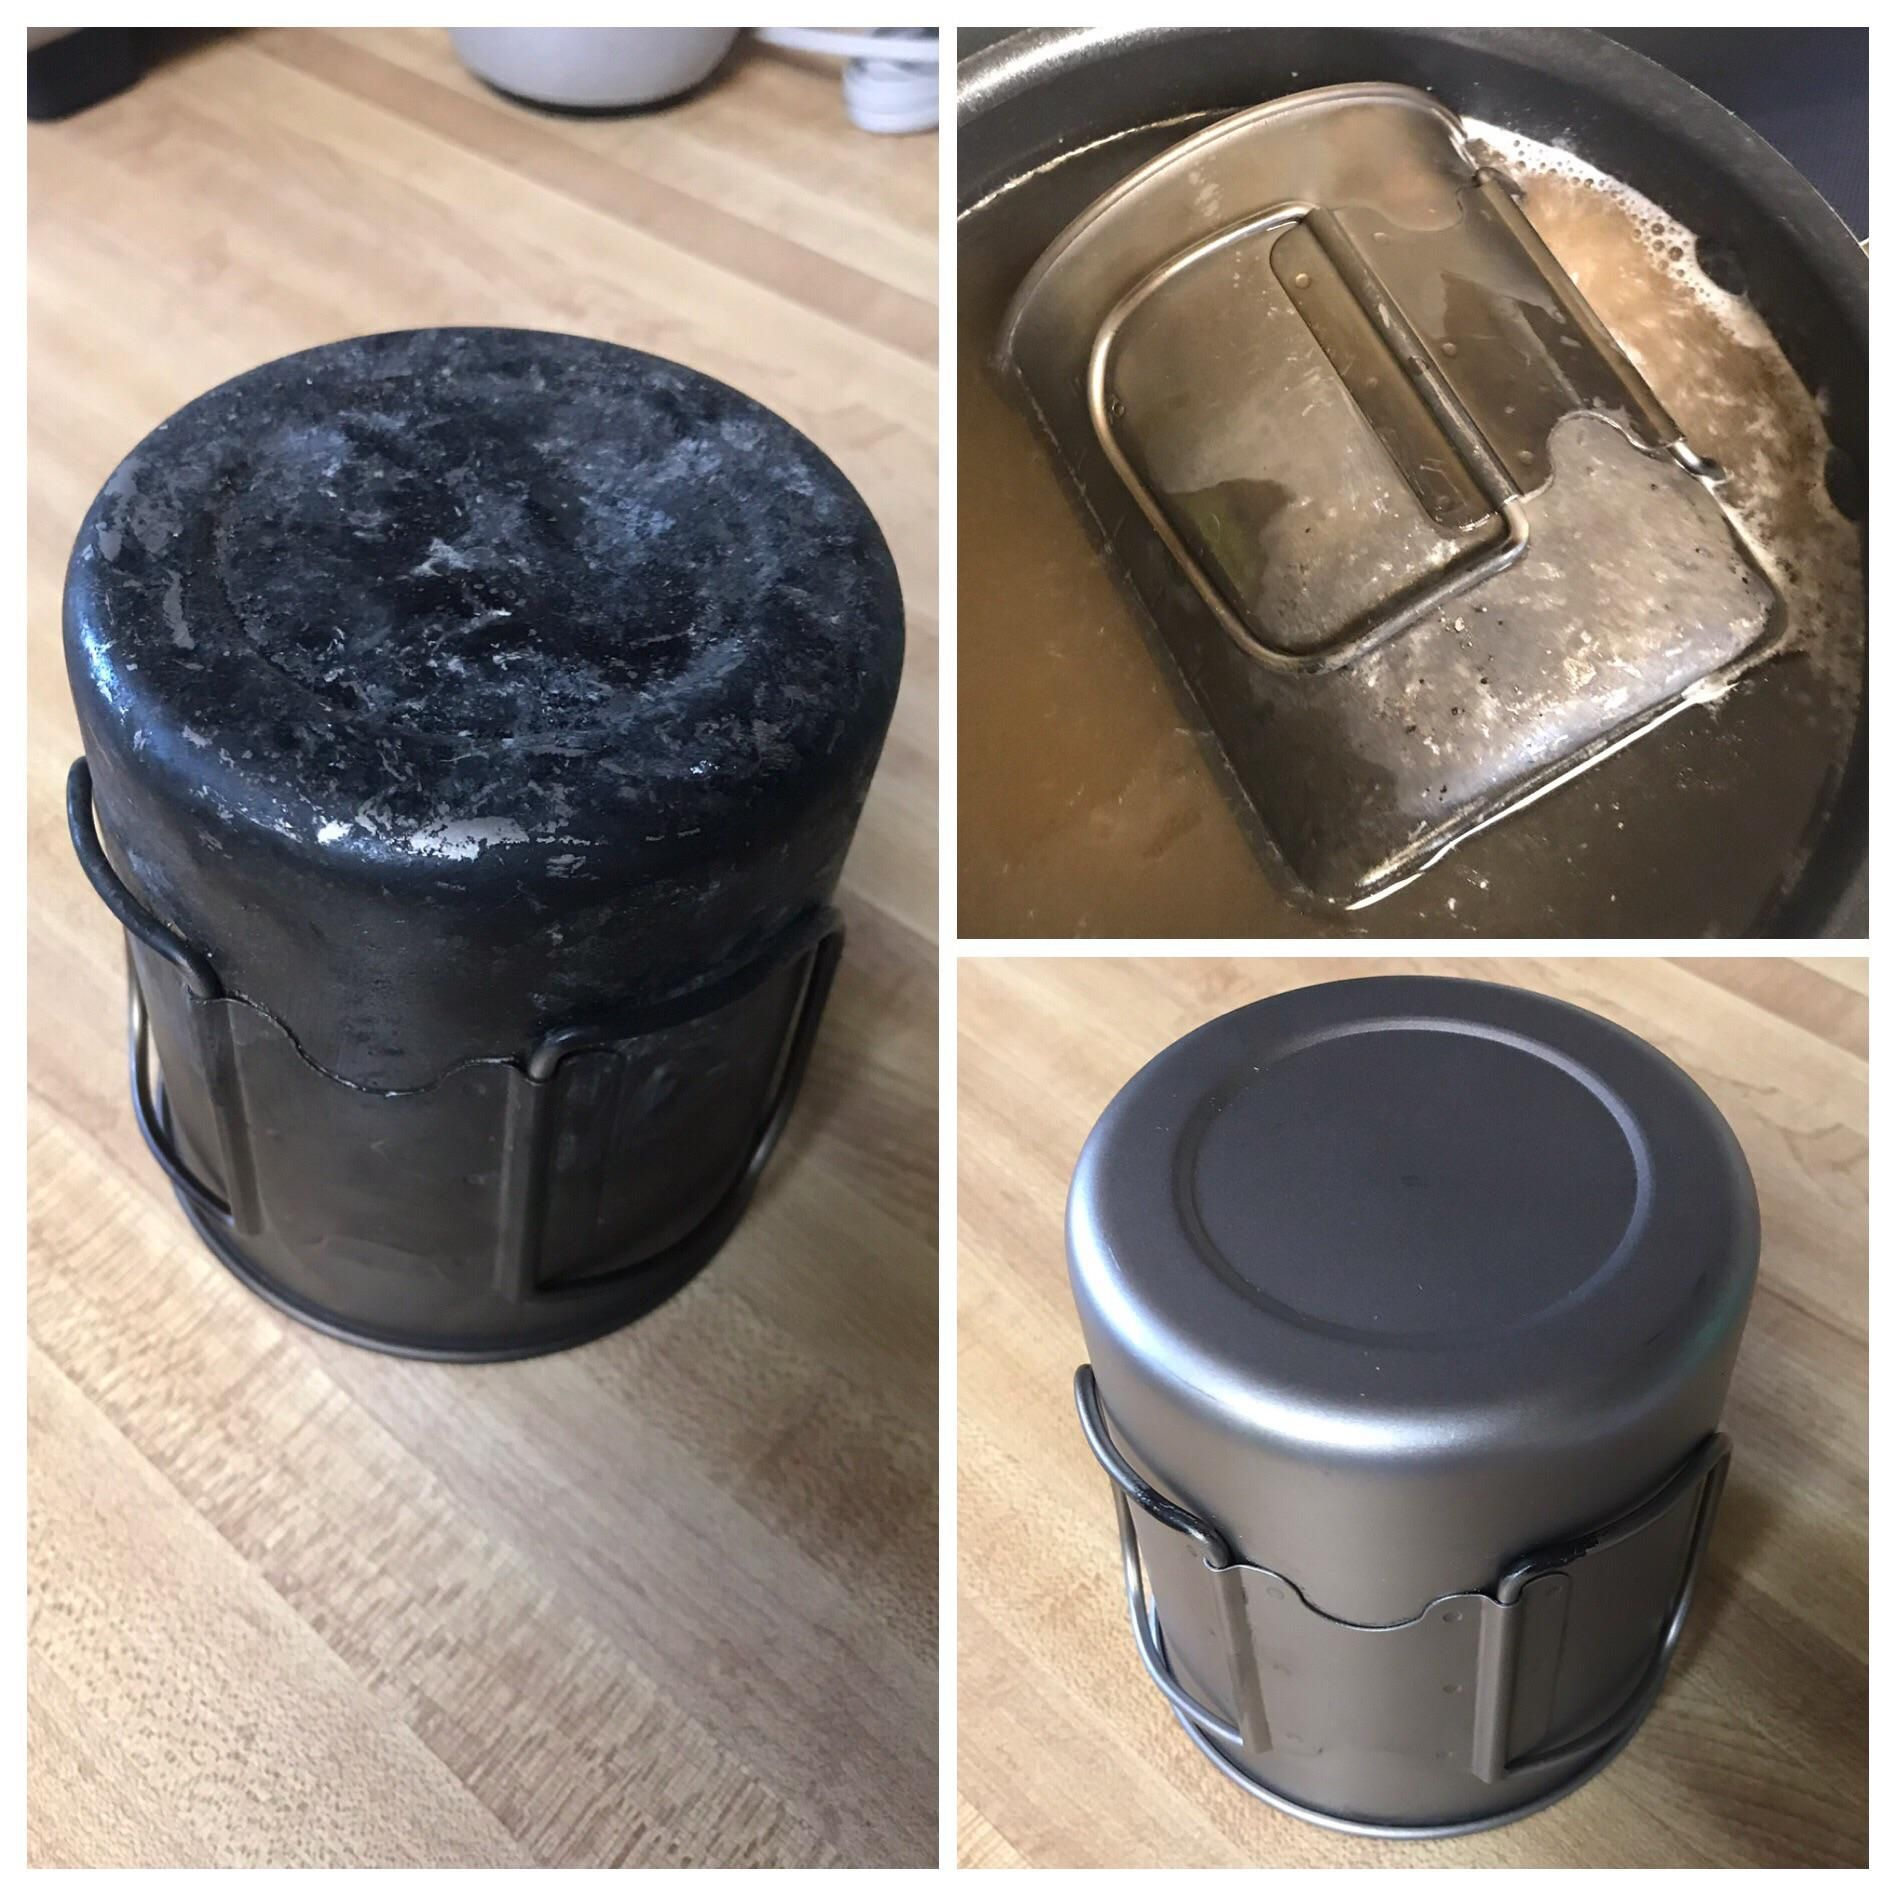 Anyone wondering how to clean your titanium boiling water